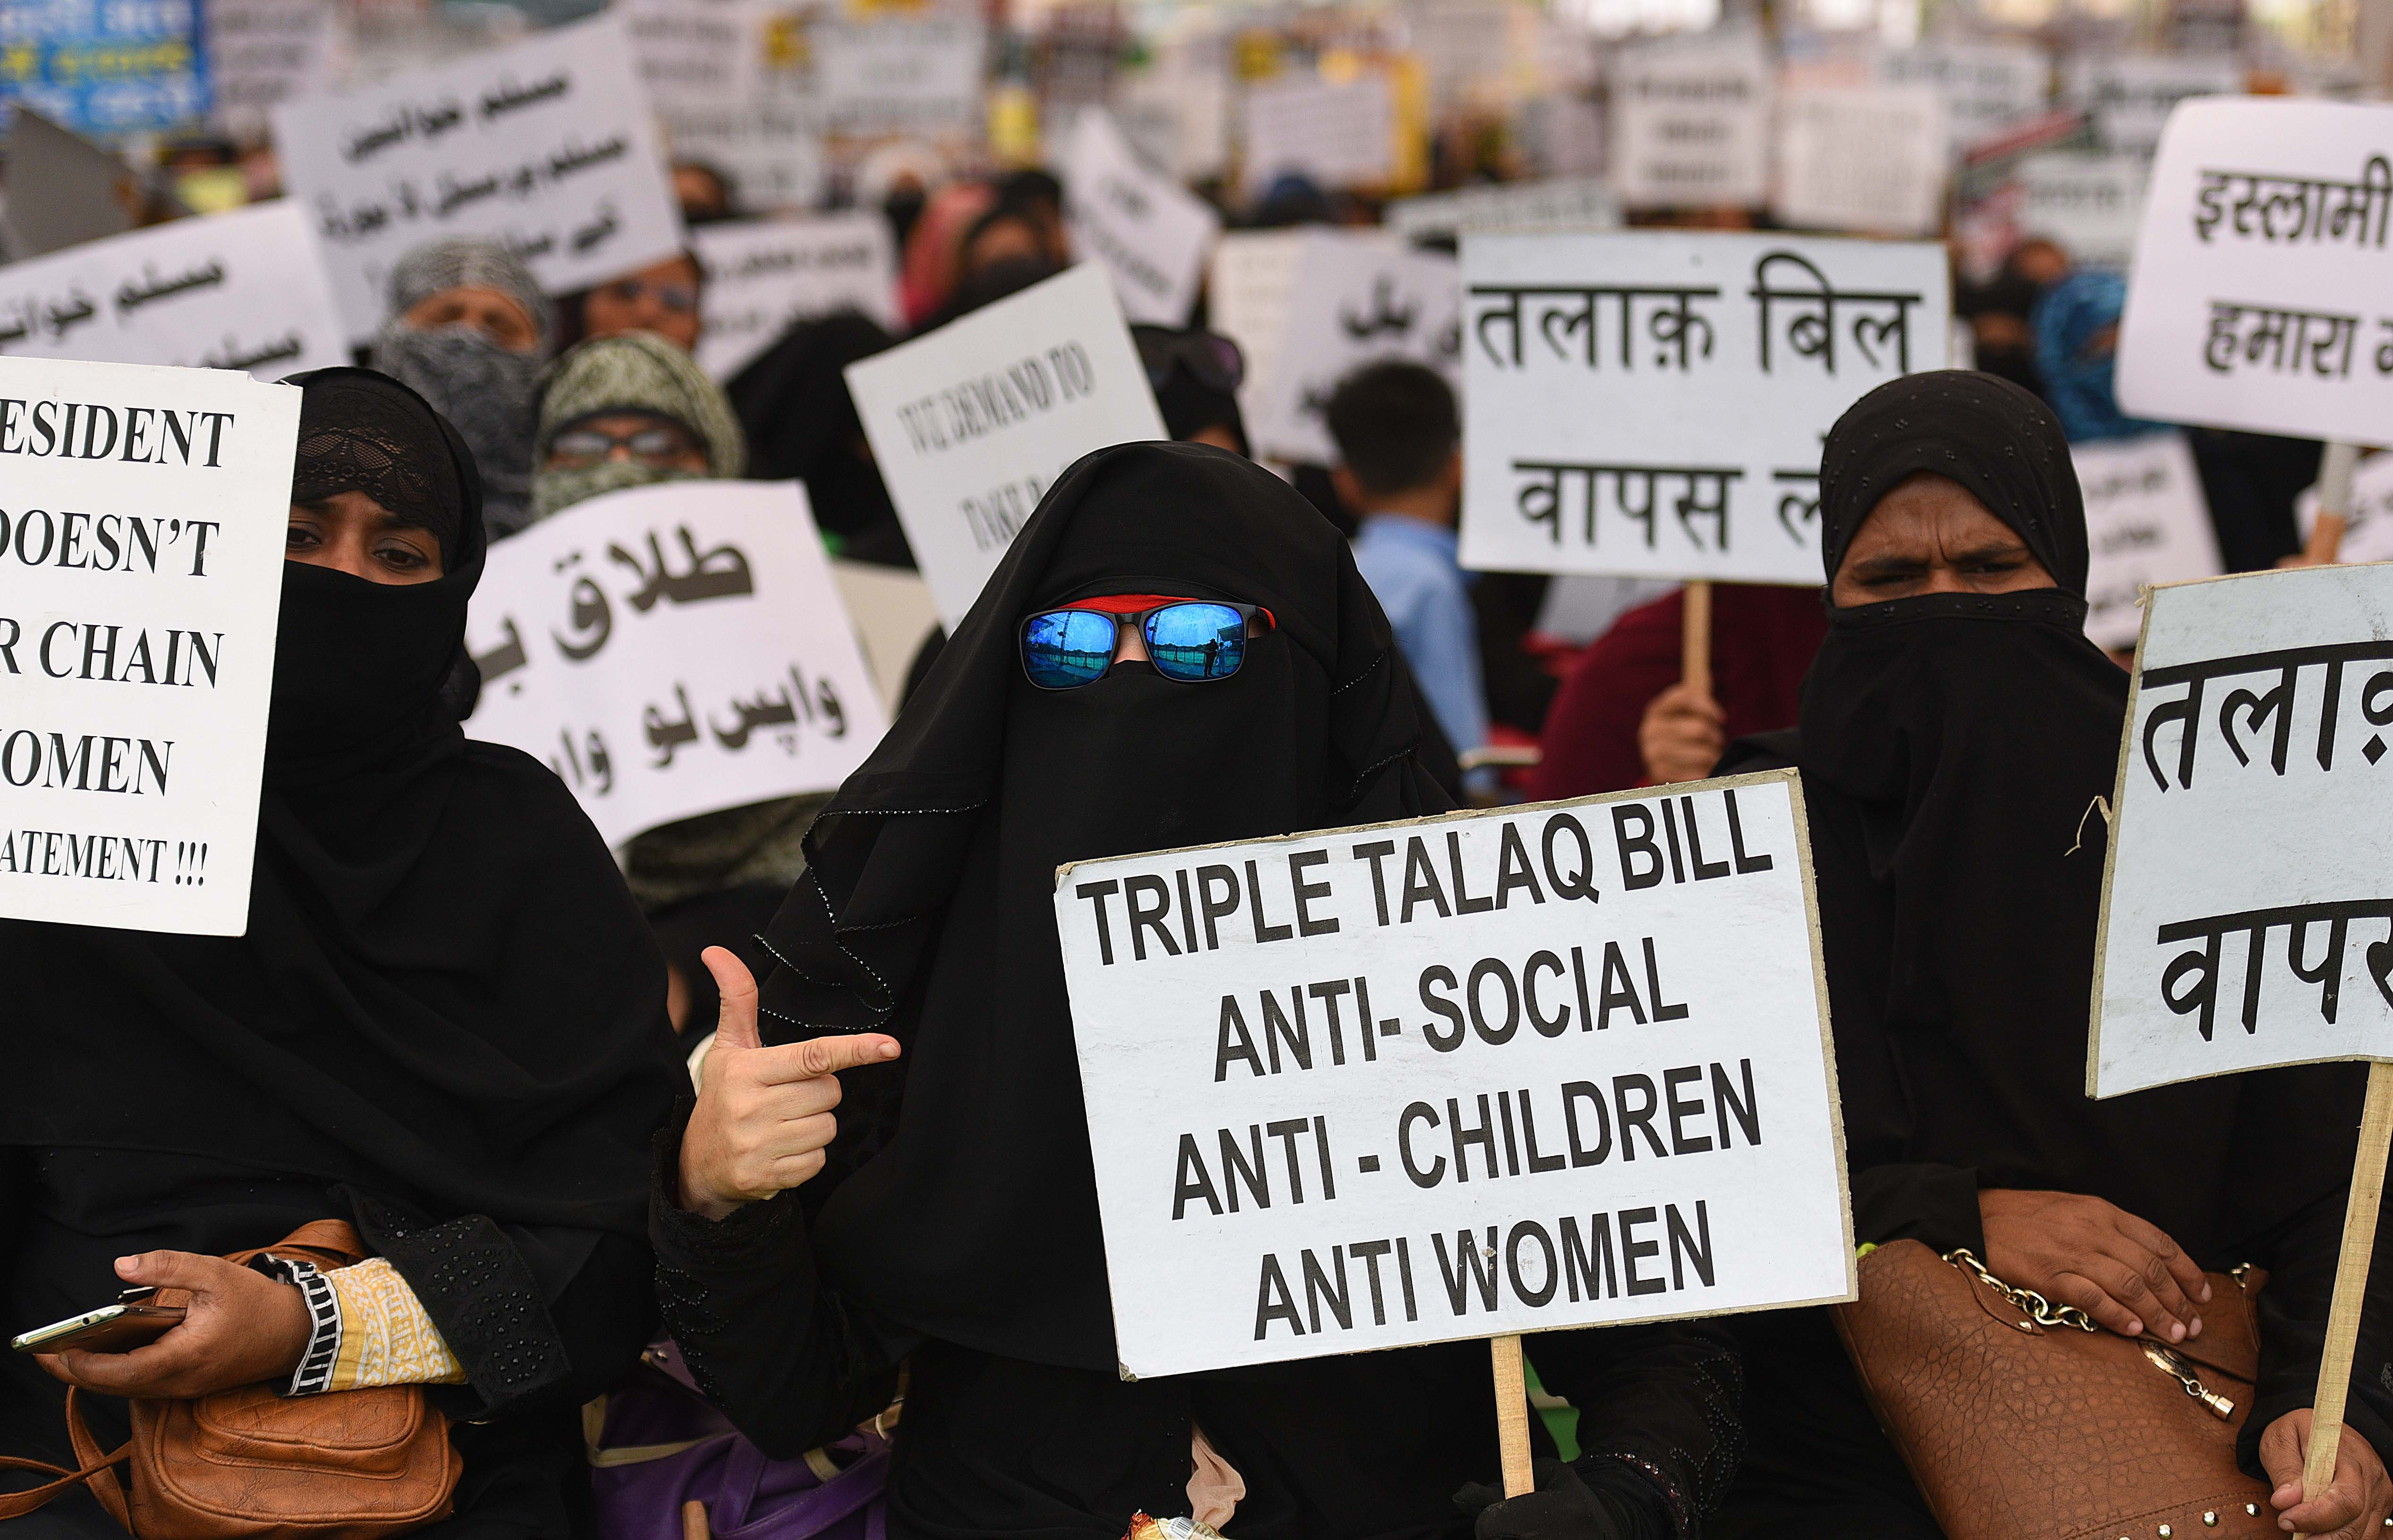 Muslim women protest against the triple talaq bill passed by the Lok Sabha at Ramlila Ground in New Delhi, India on April 4, 2018.